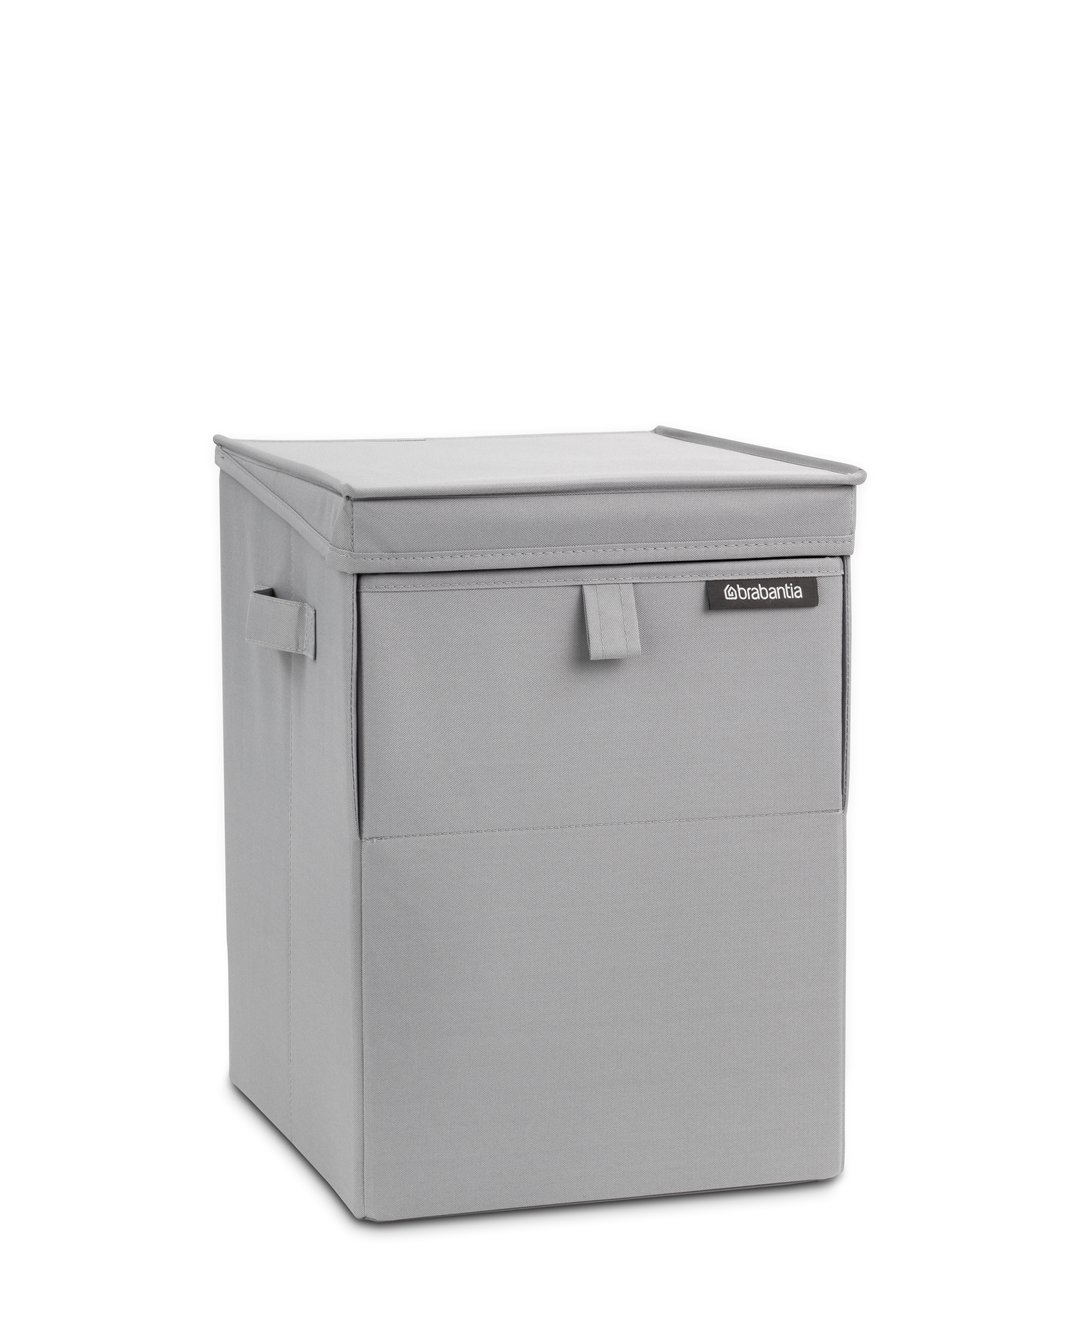 Brabantia Stackable Laundry Box 35 Litre Cool Grey At